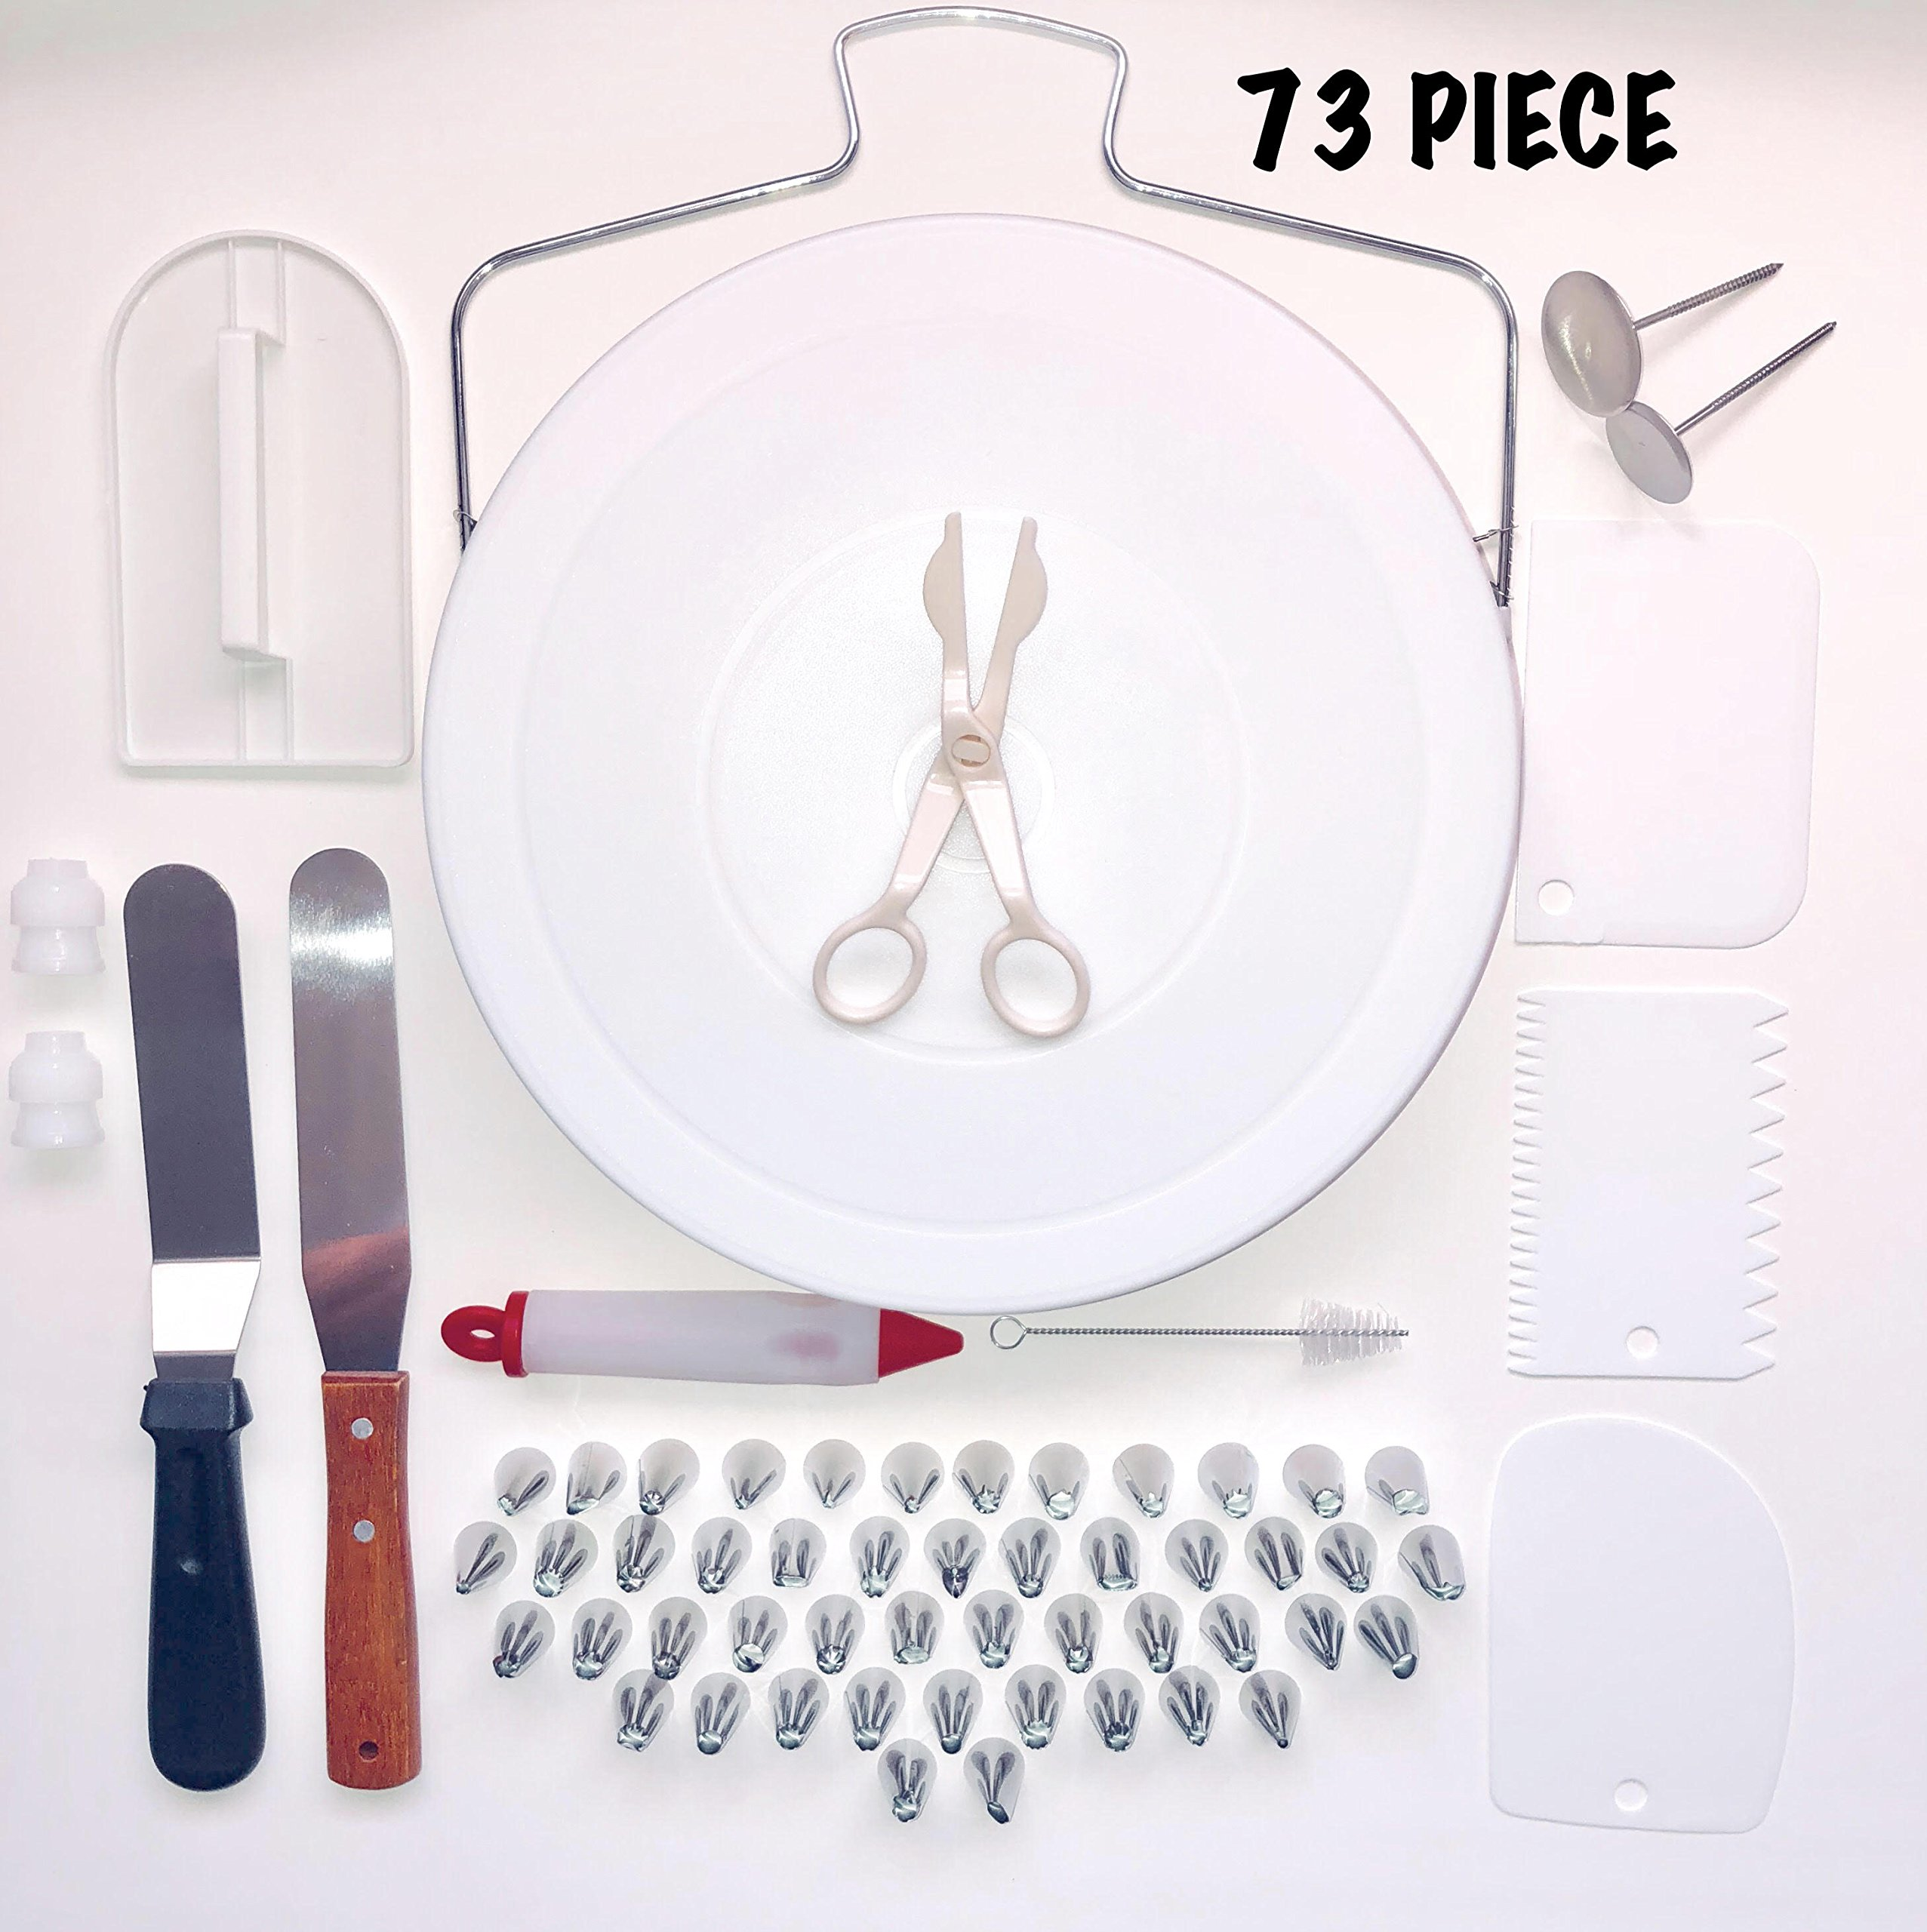 Professional Cake Decorating Supplies Kit- Rotating Turntable, Stainless Steel Fondant Tips, Molds, Piping Nozzle Bags, Icing Spatula |All in One Beginners Set| DIY Cake Decoration Supply Set 73 Piece